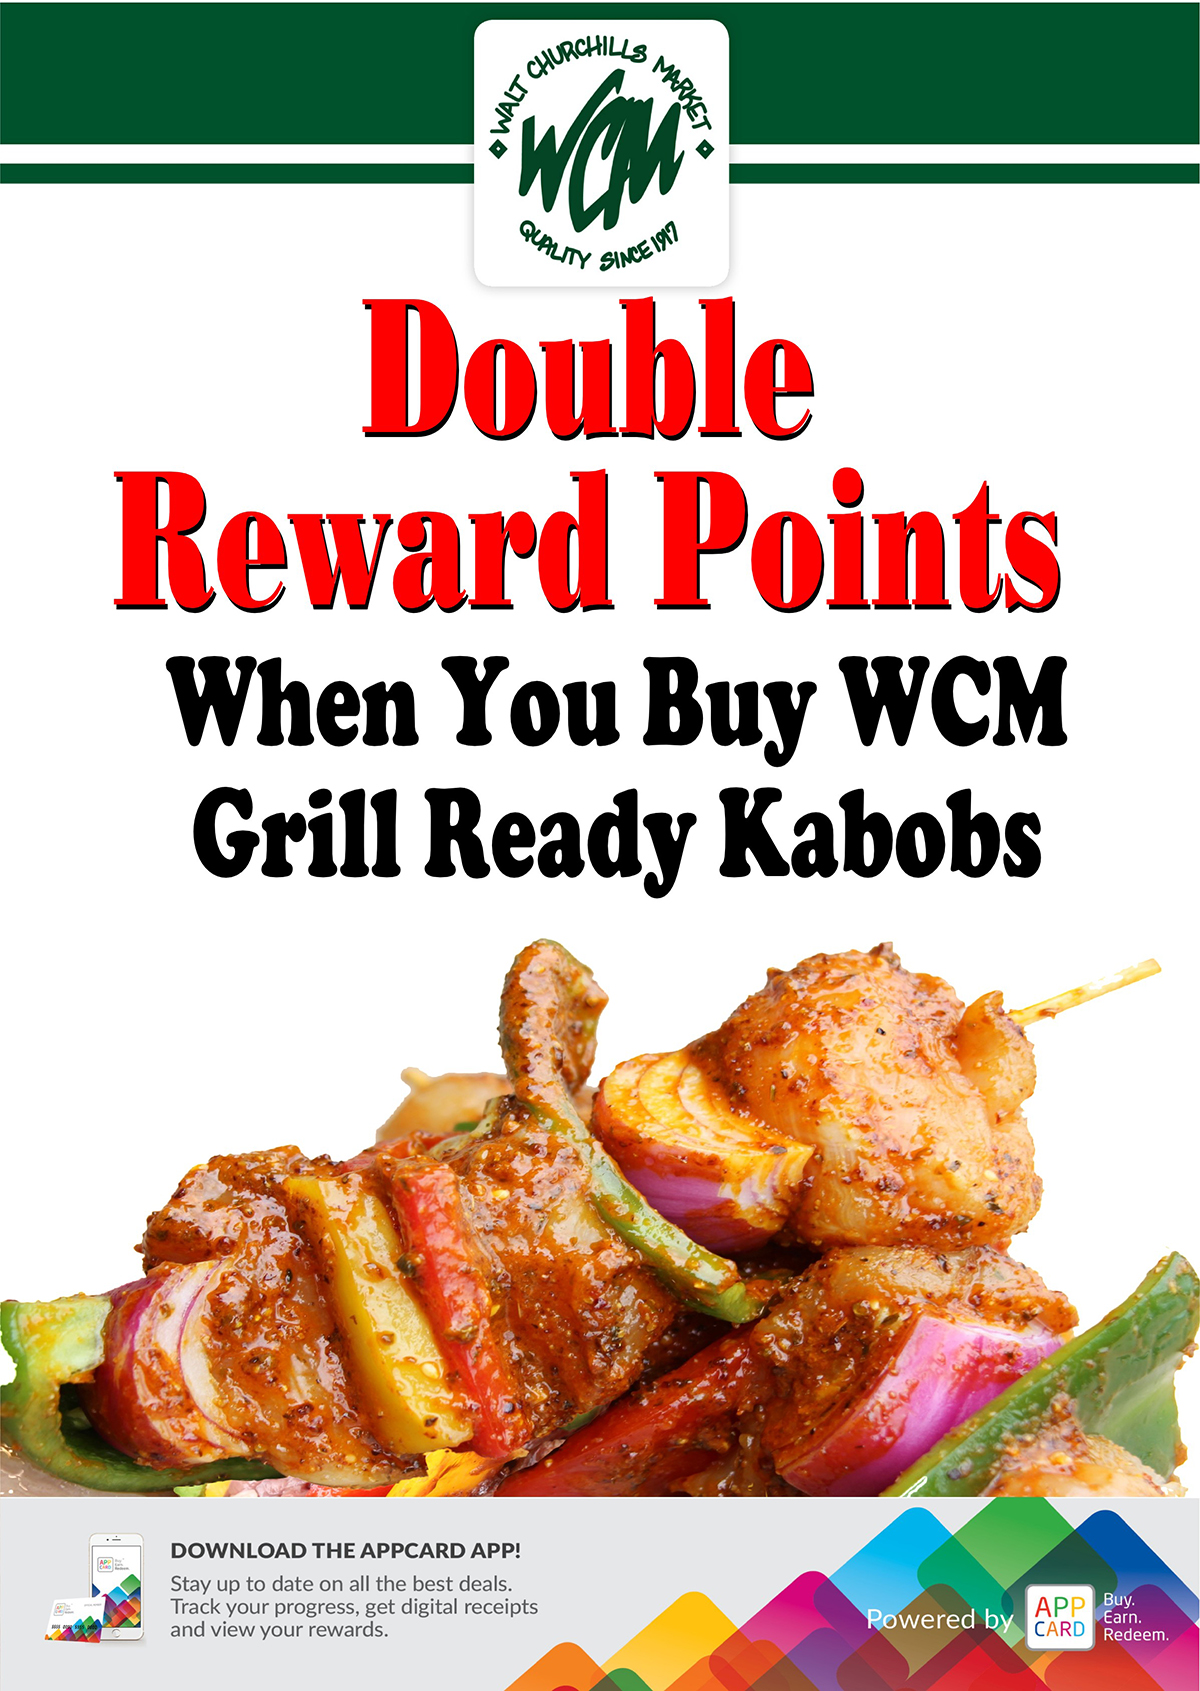 Double Reward Points when you buy WCM Grill Ready Kabobs